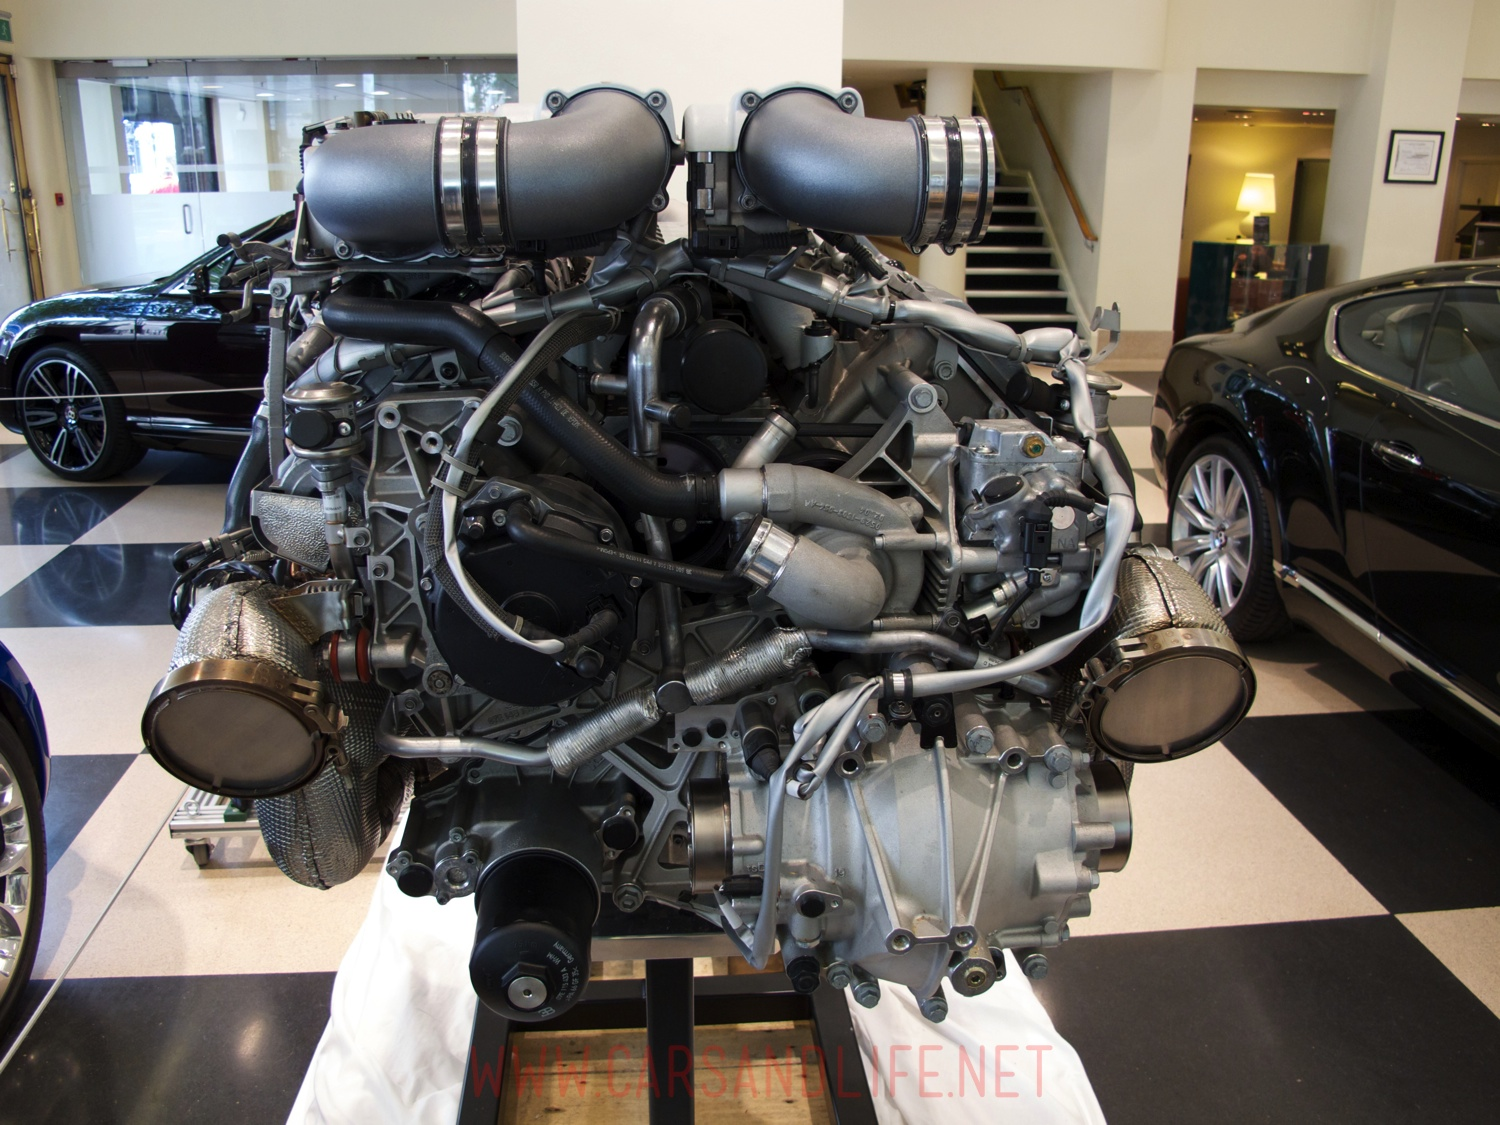 hight resolution of bugatti veyron w16 engine and gearbox at hr owen london rh carsandlife net bugatti veyron engine